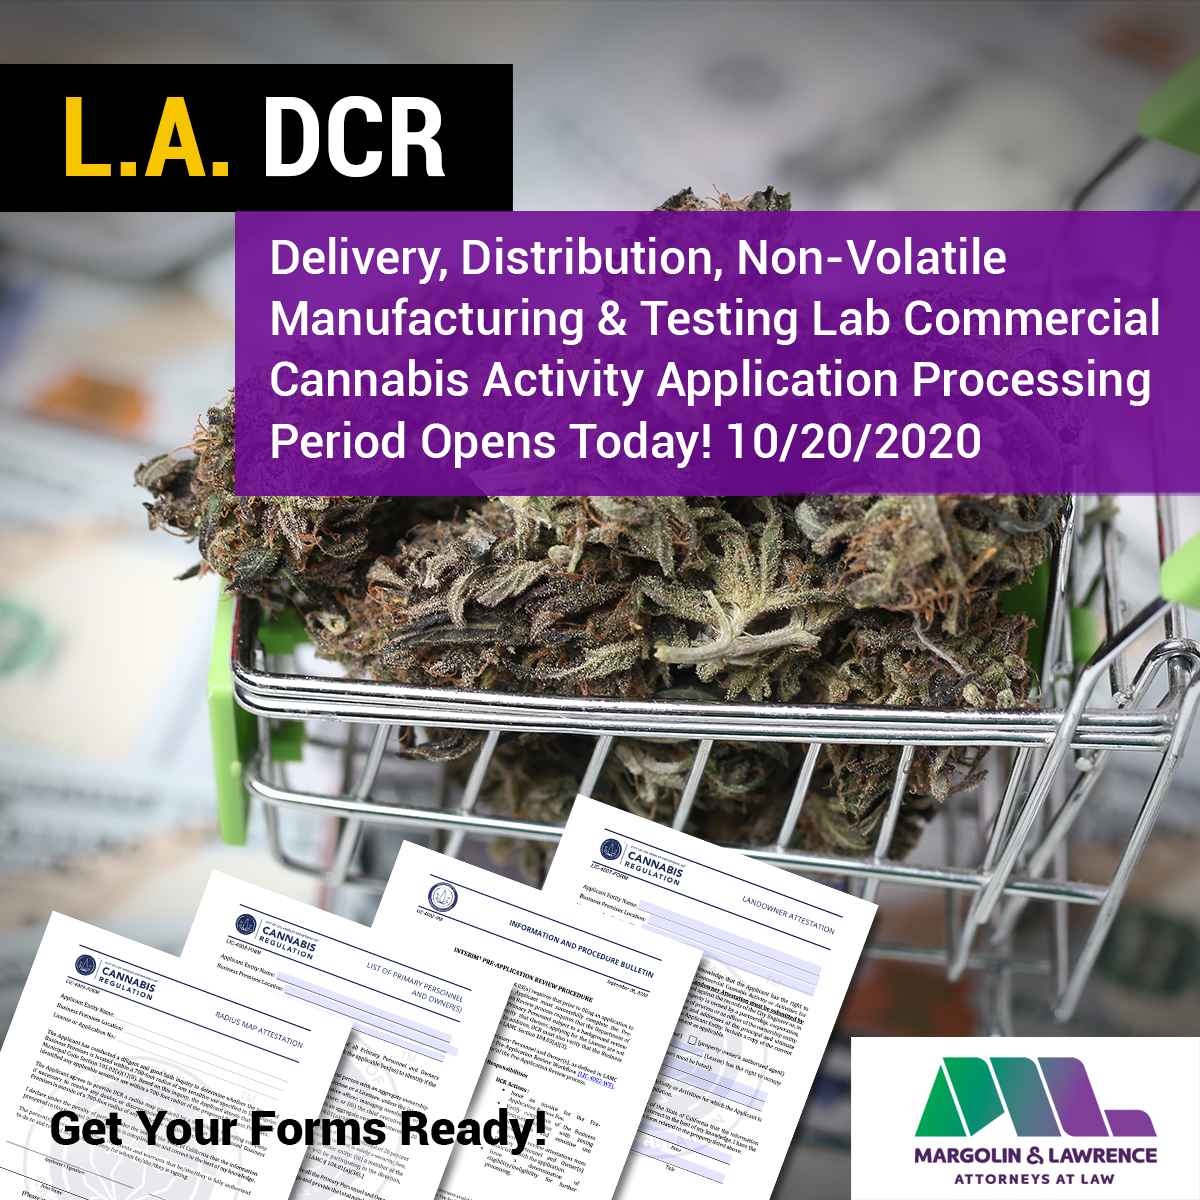 Delivery, Distribution, Non-Volatile Manufacturing and Testing Lab Commercial Cannabis Activity Application Processing Opens Today 10/20/2020 (Forms)